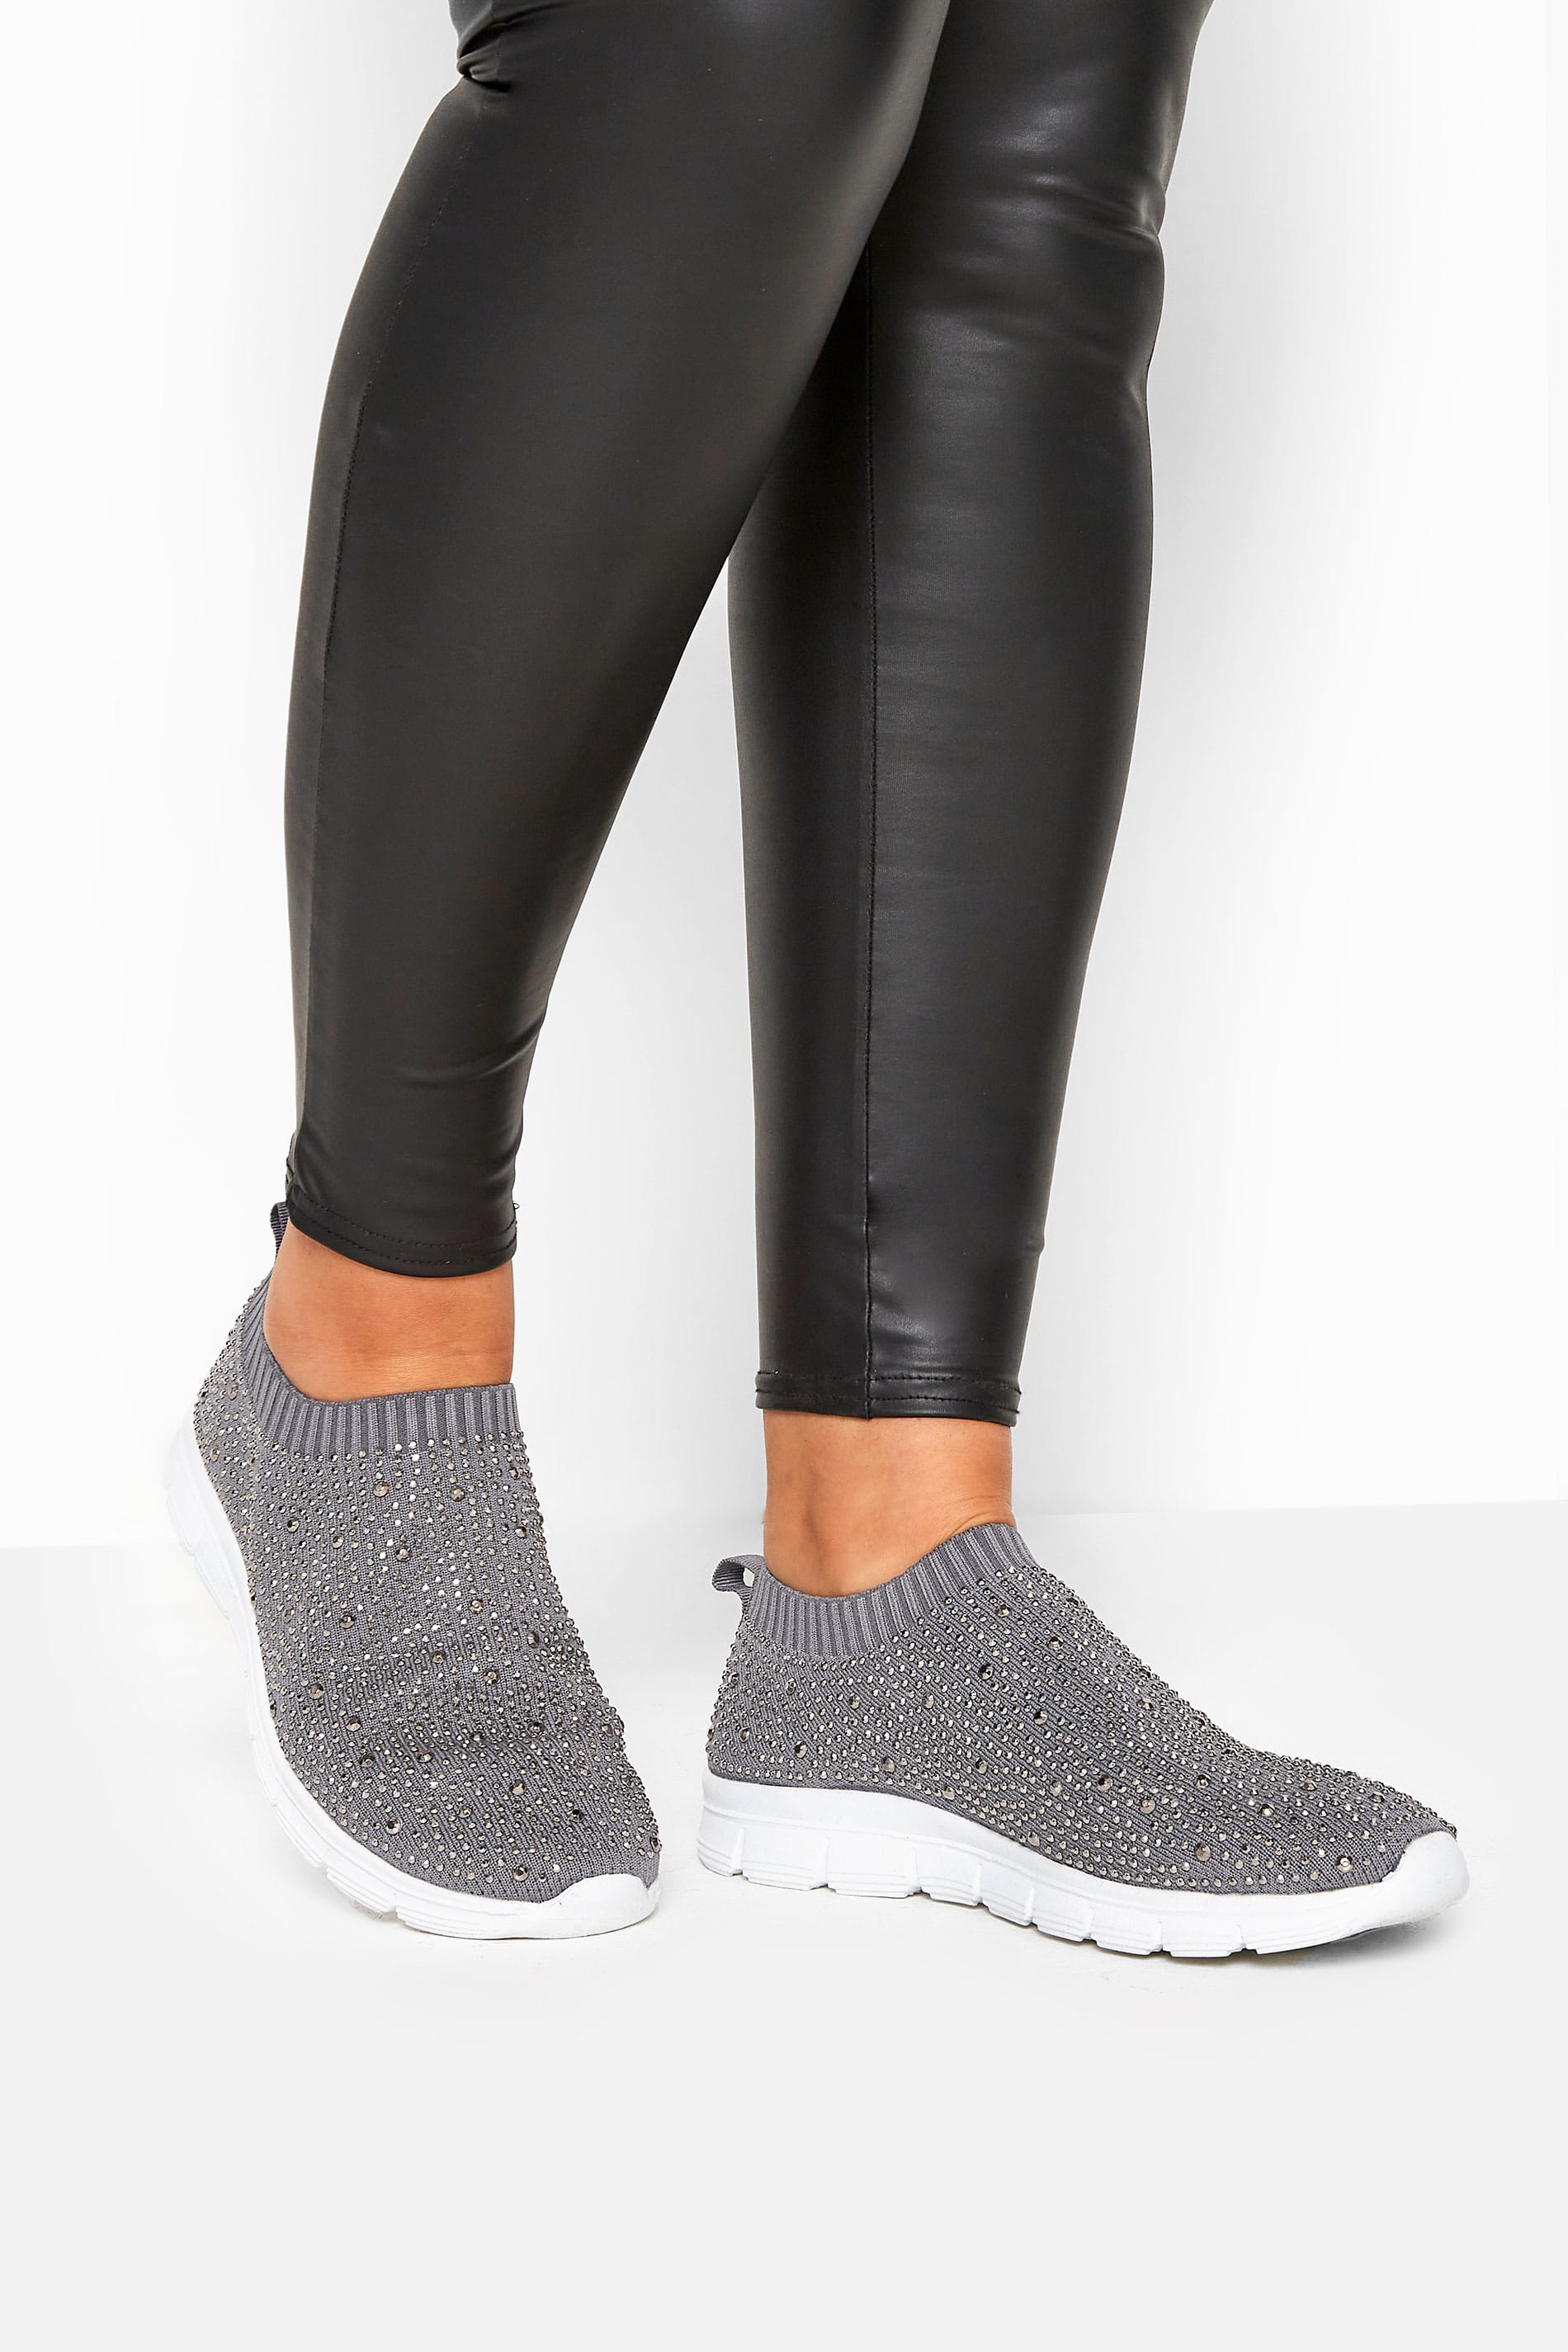 Grey Sock Style Diamante Trainers In Extra Wide Fit